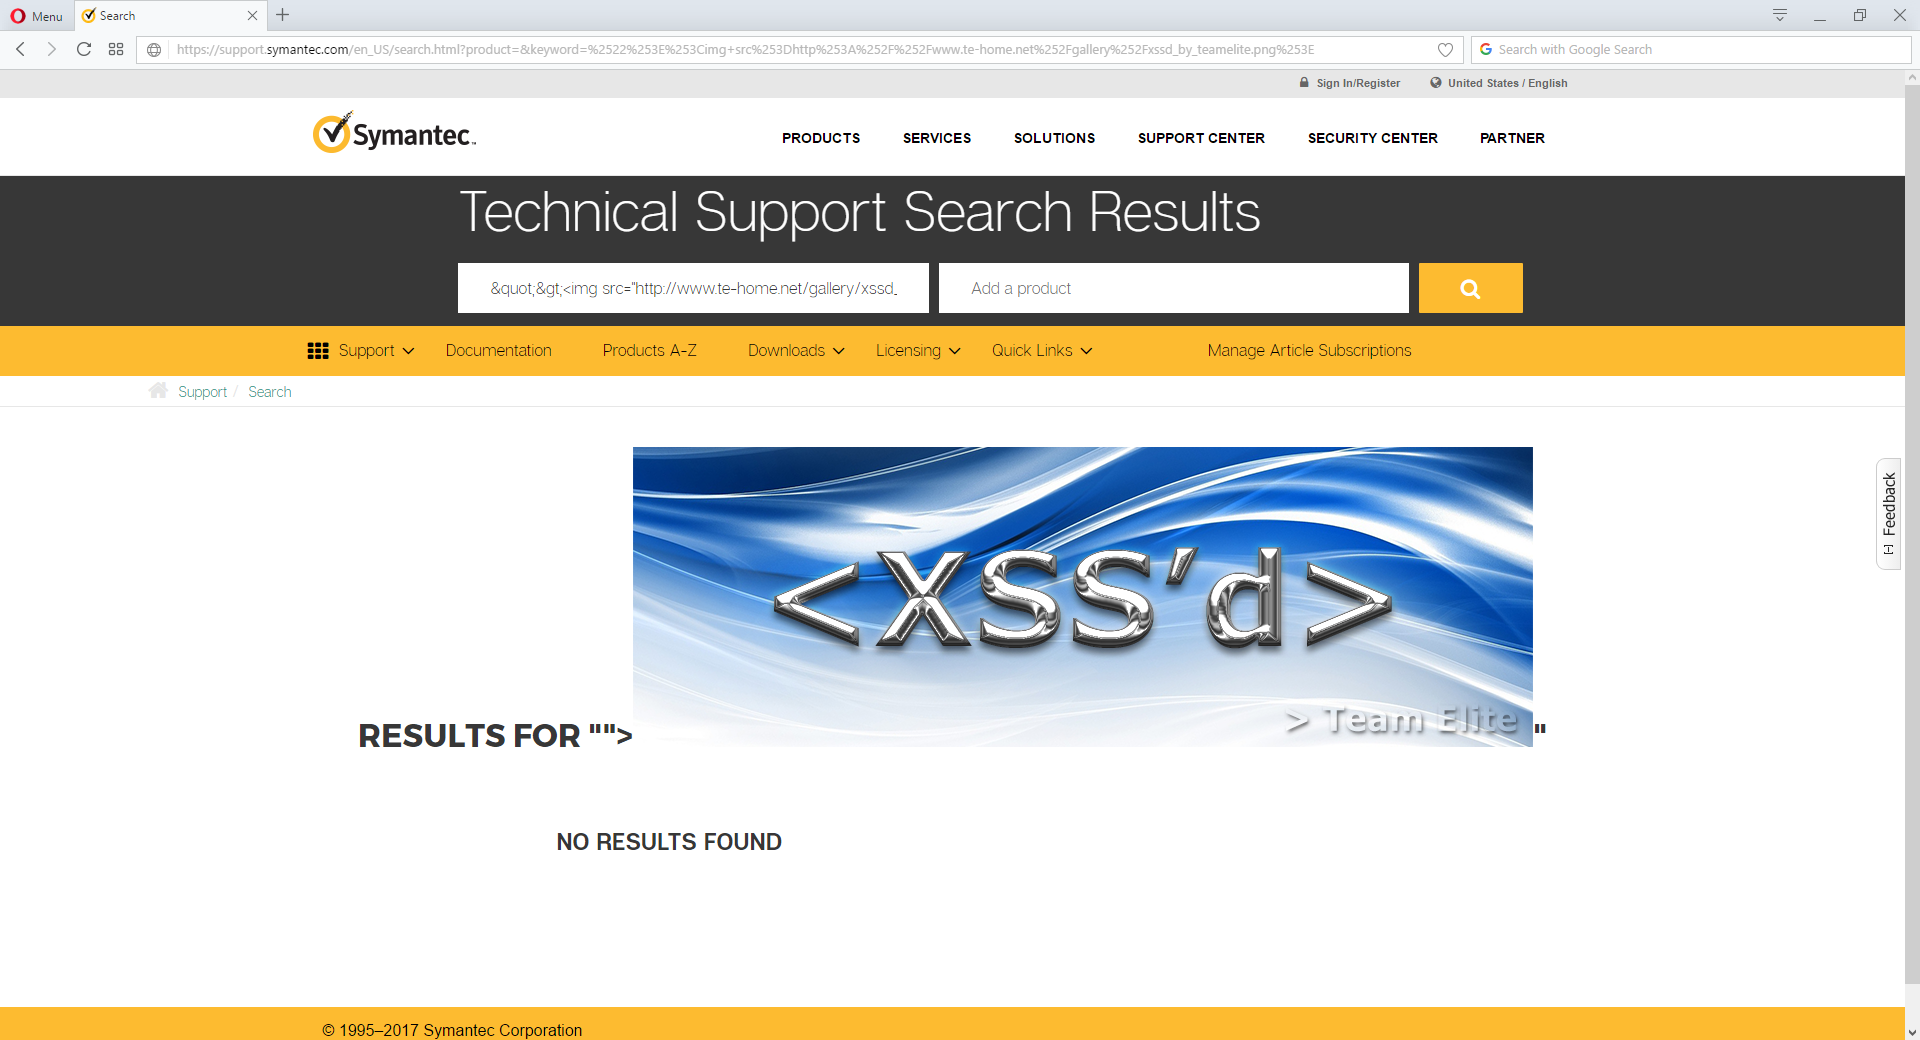 Team Elite - News - They never learn: Symantec support page